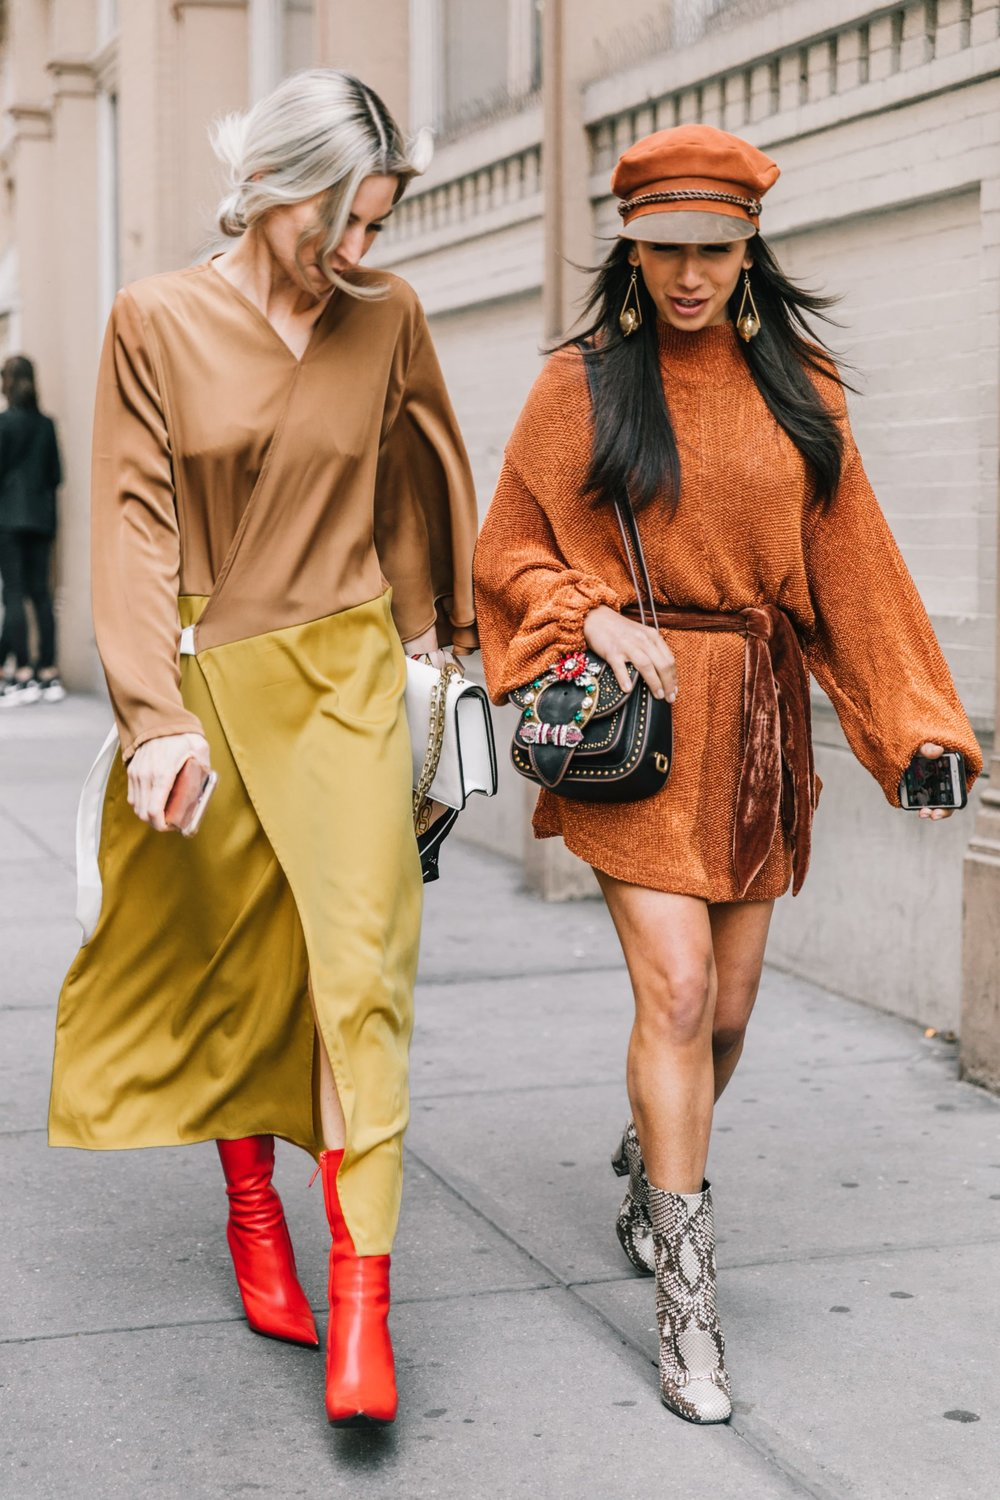 NYFW-SS18-New_York_Fashion_Week-Street_Style-Vogue-Collage_Vintage-191-1800x2700.jpg